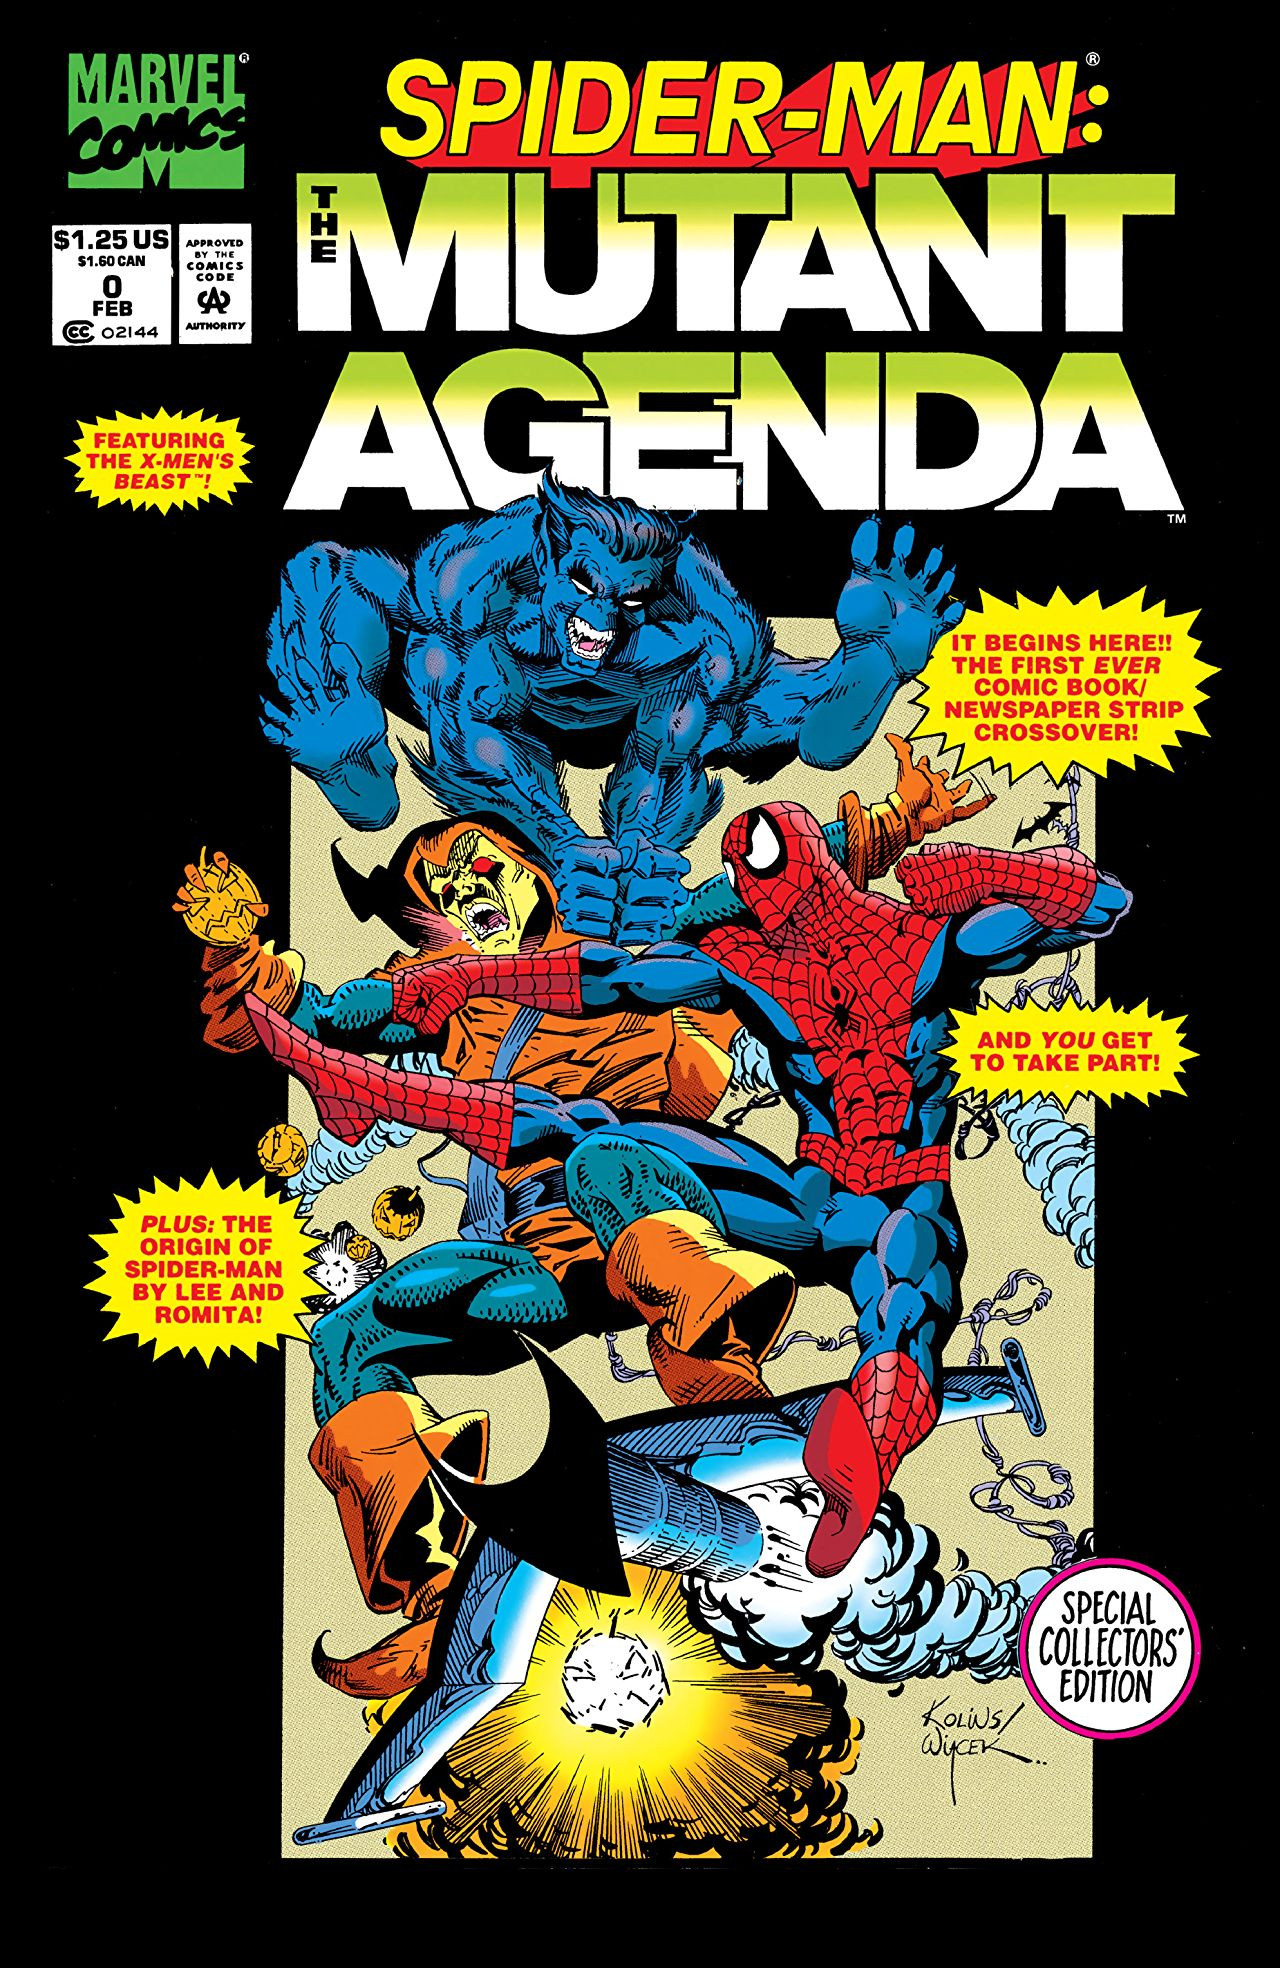 Spider-Man The Mutant Agenda Vol 1 0.jpg